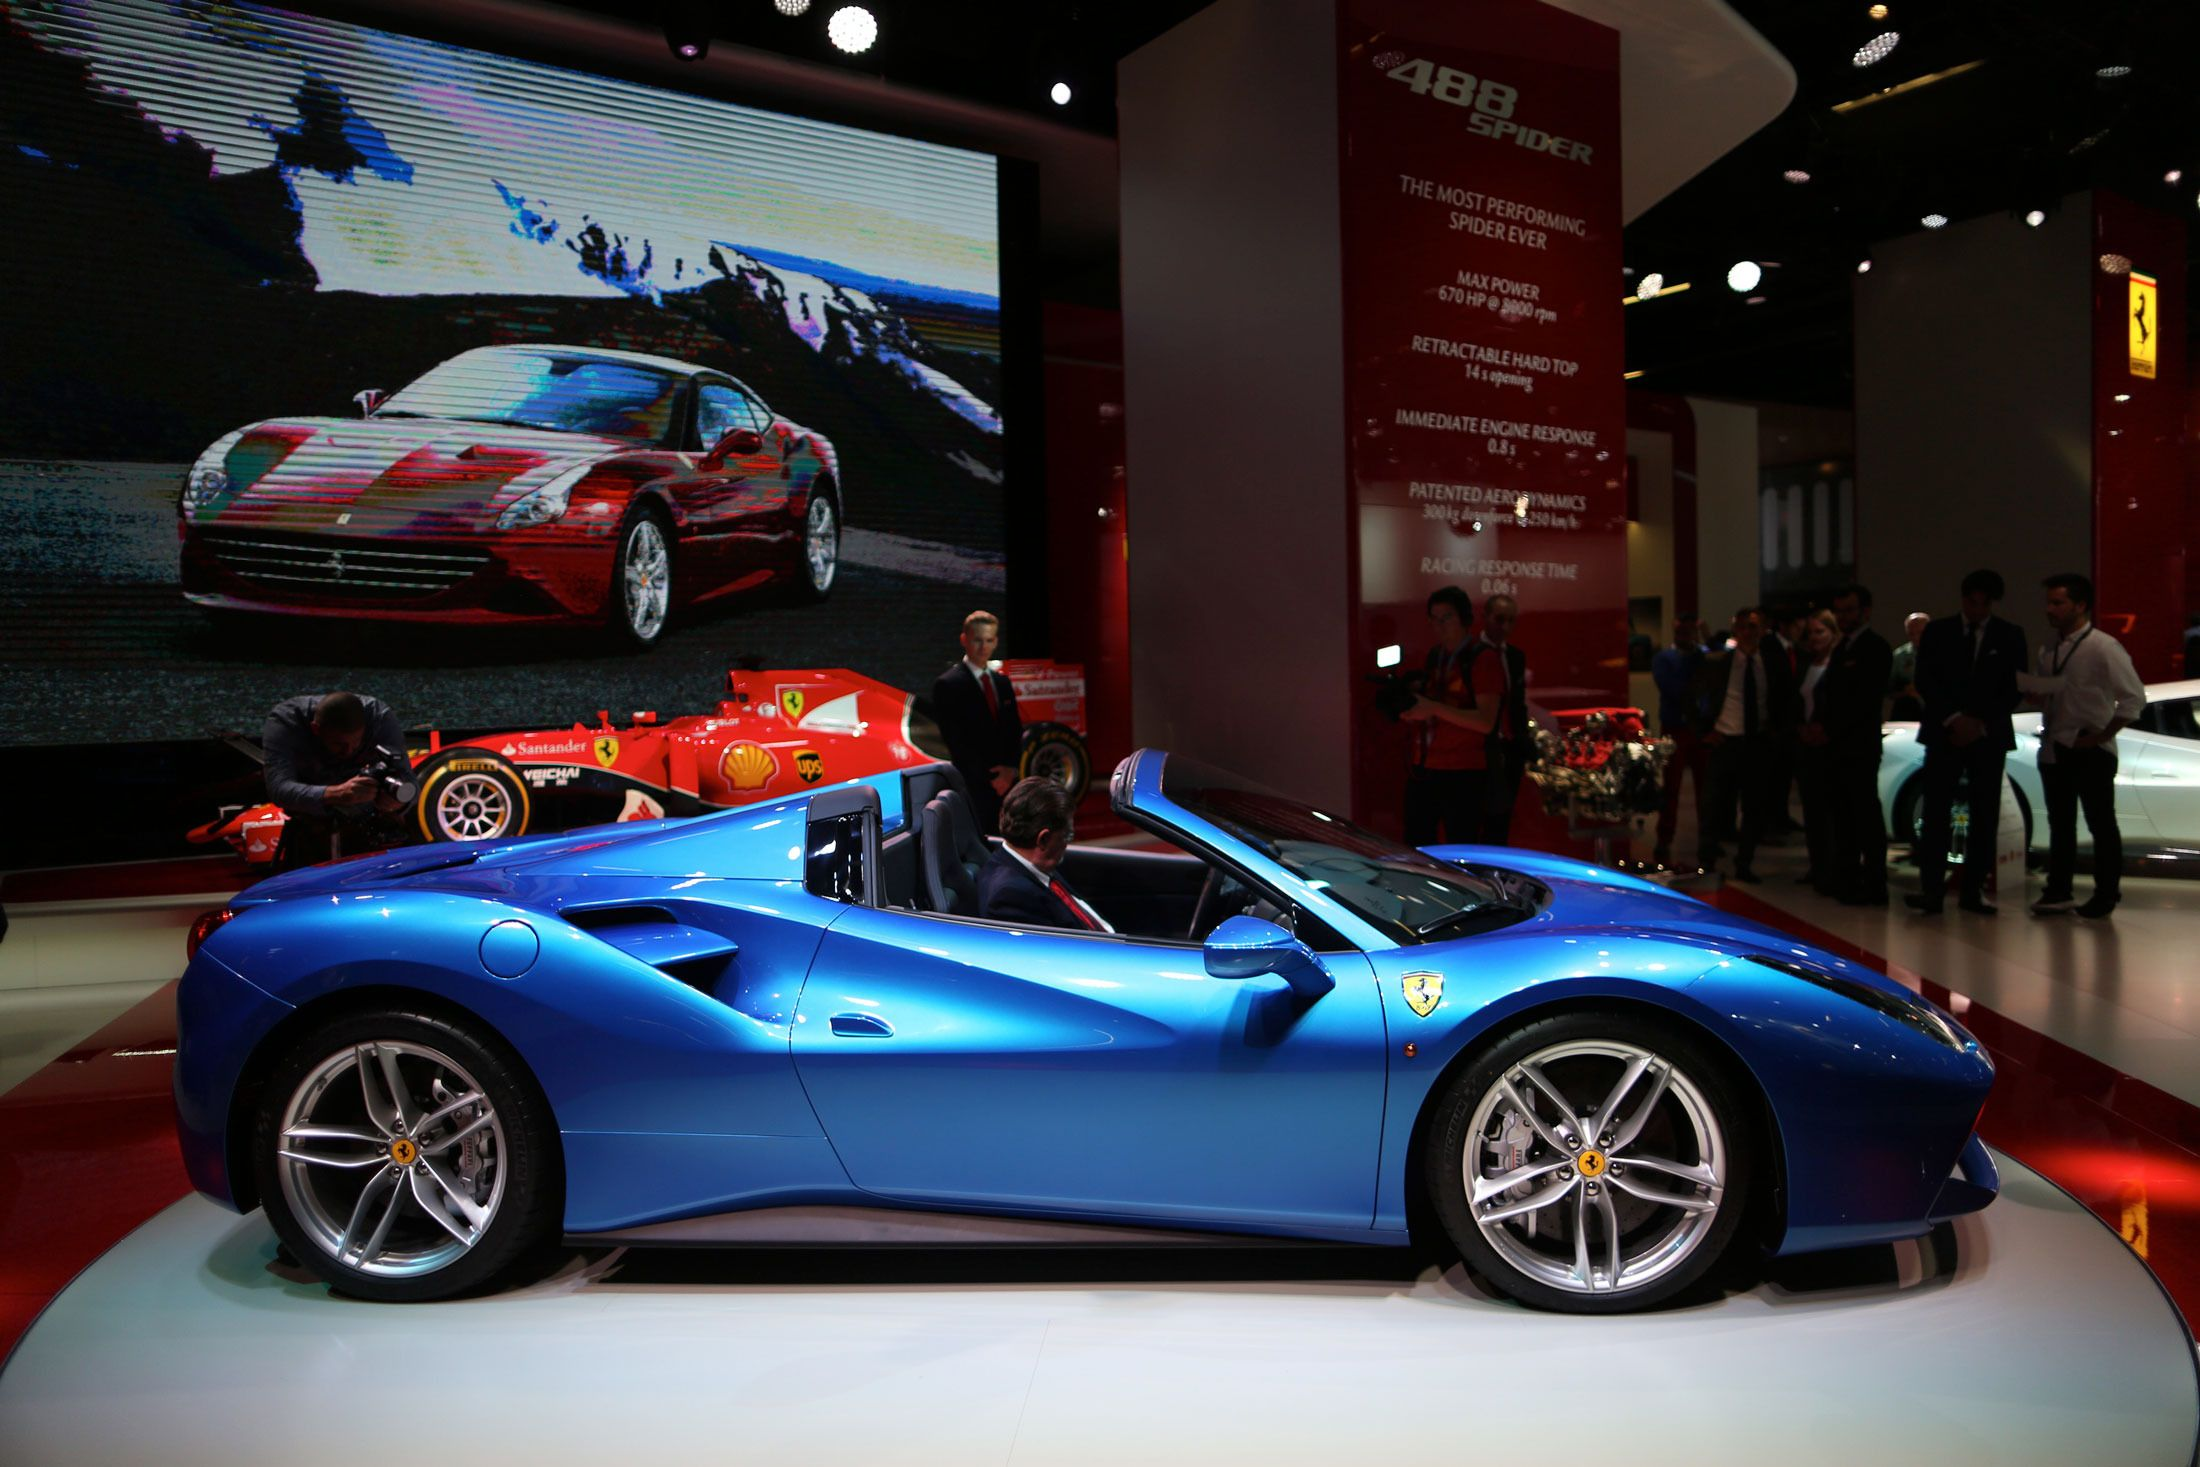 The Most Thrilling Cars From the Frankfurt Motor Show, in Pictures #newferrari